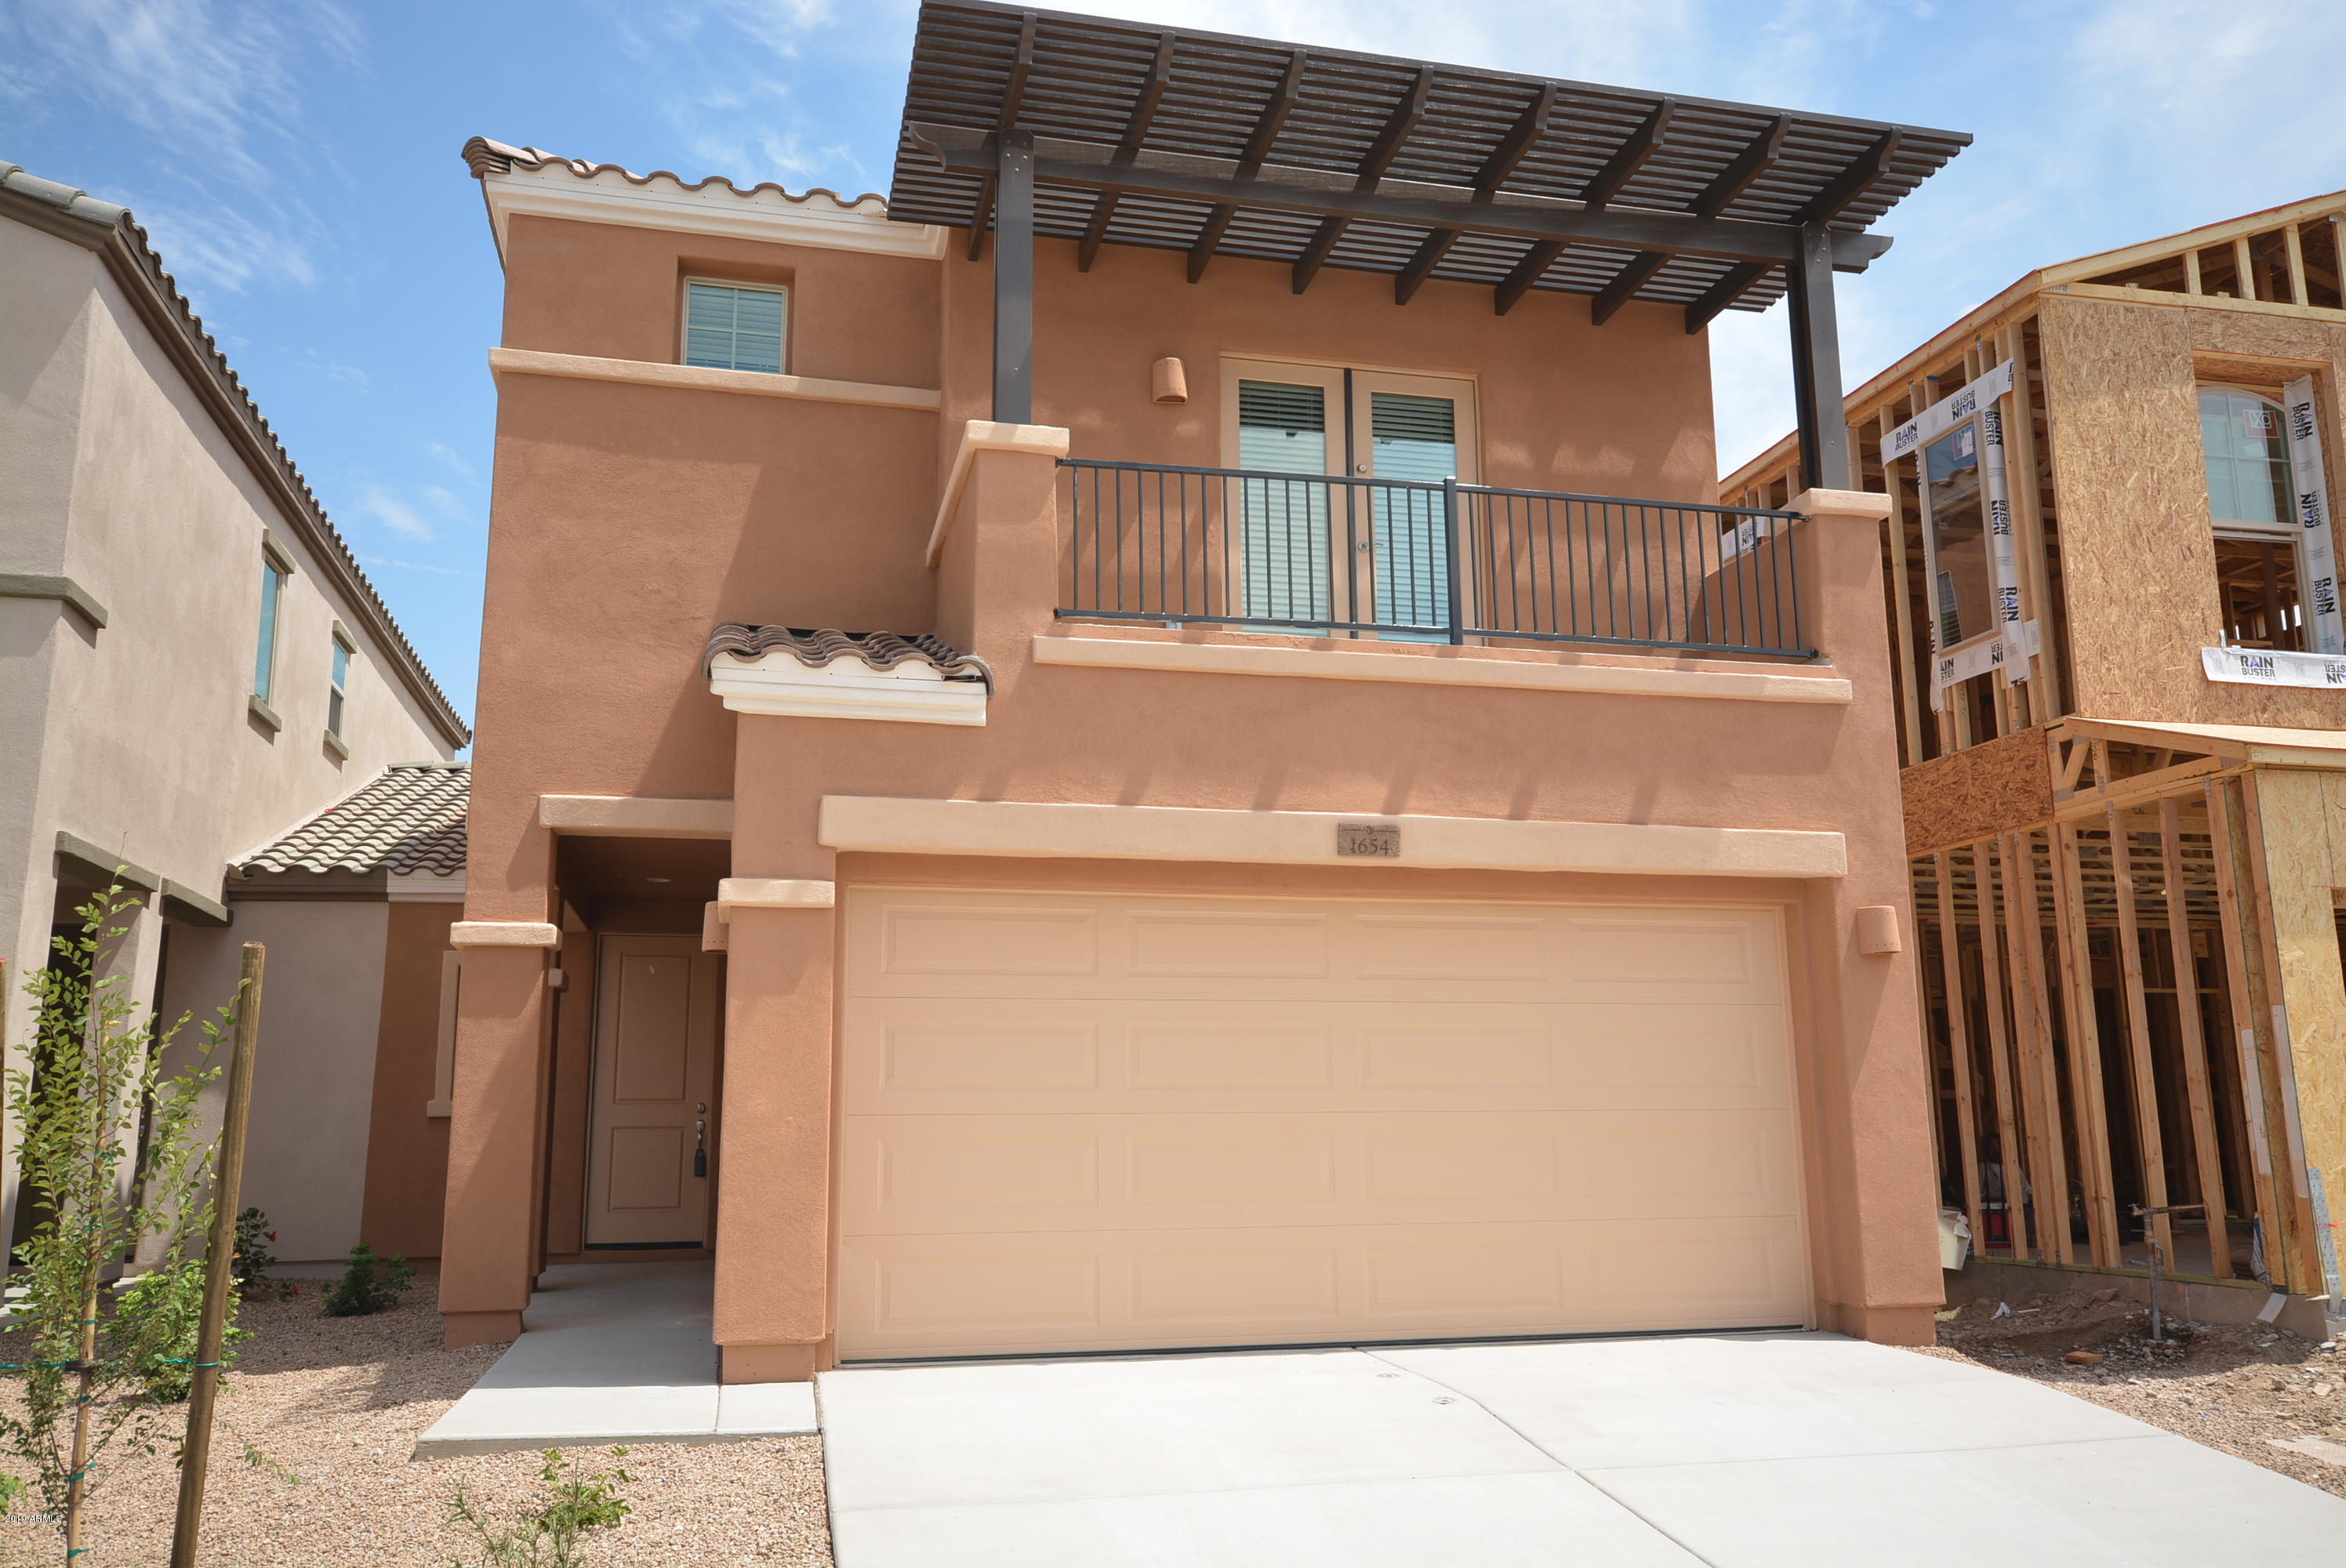 Photo of 1638 W REDWOOD Lane, Phoenix, AZ 85045